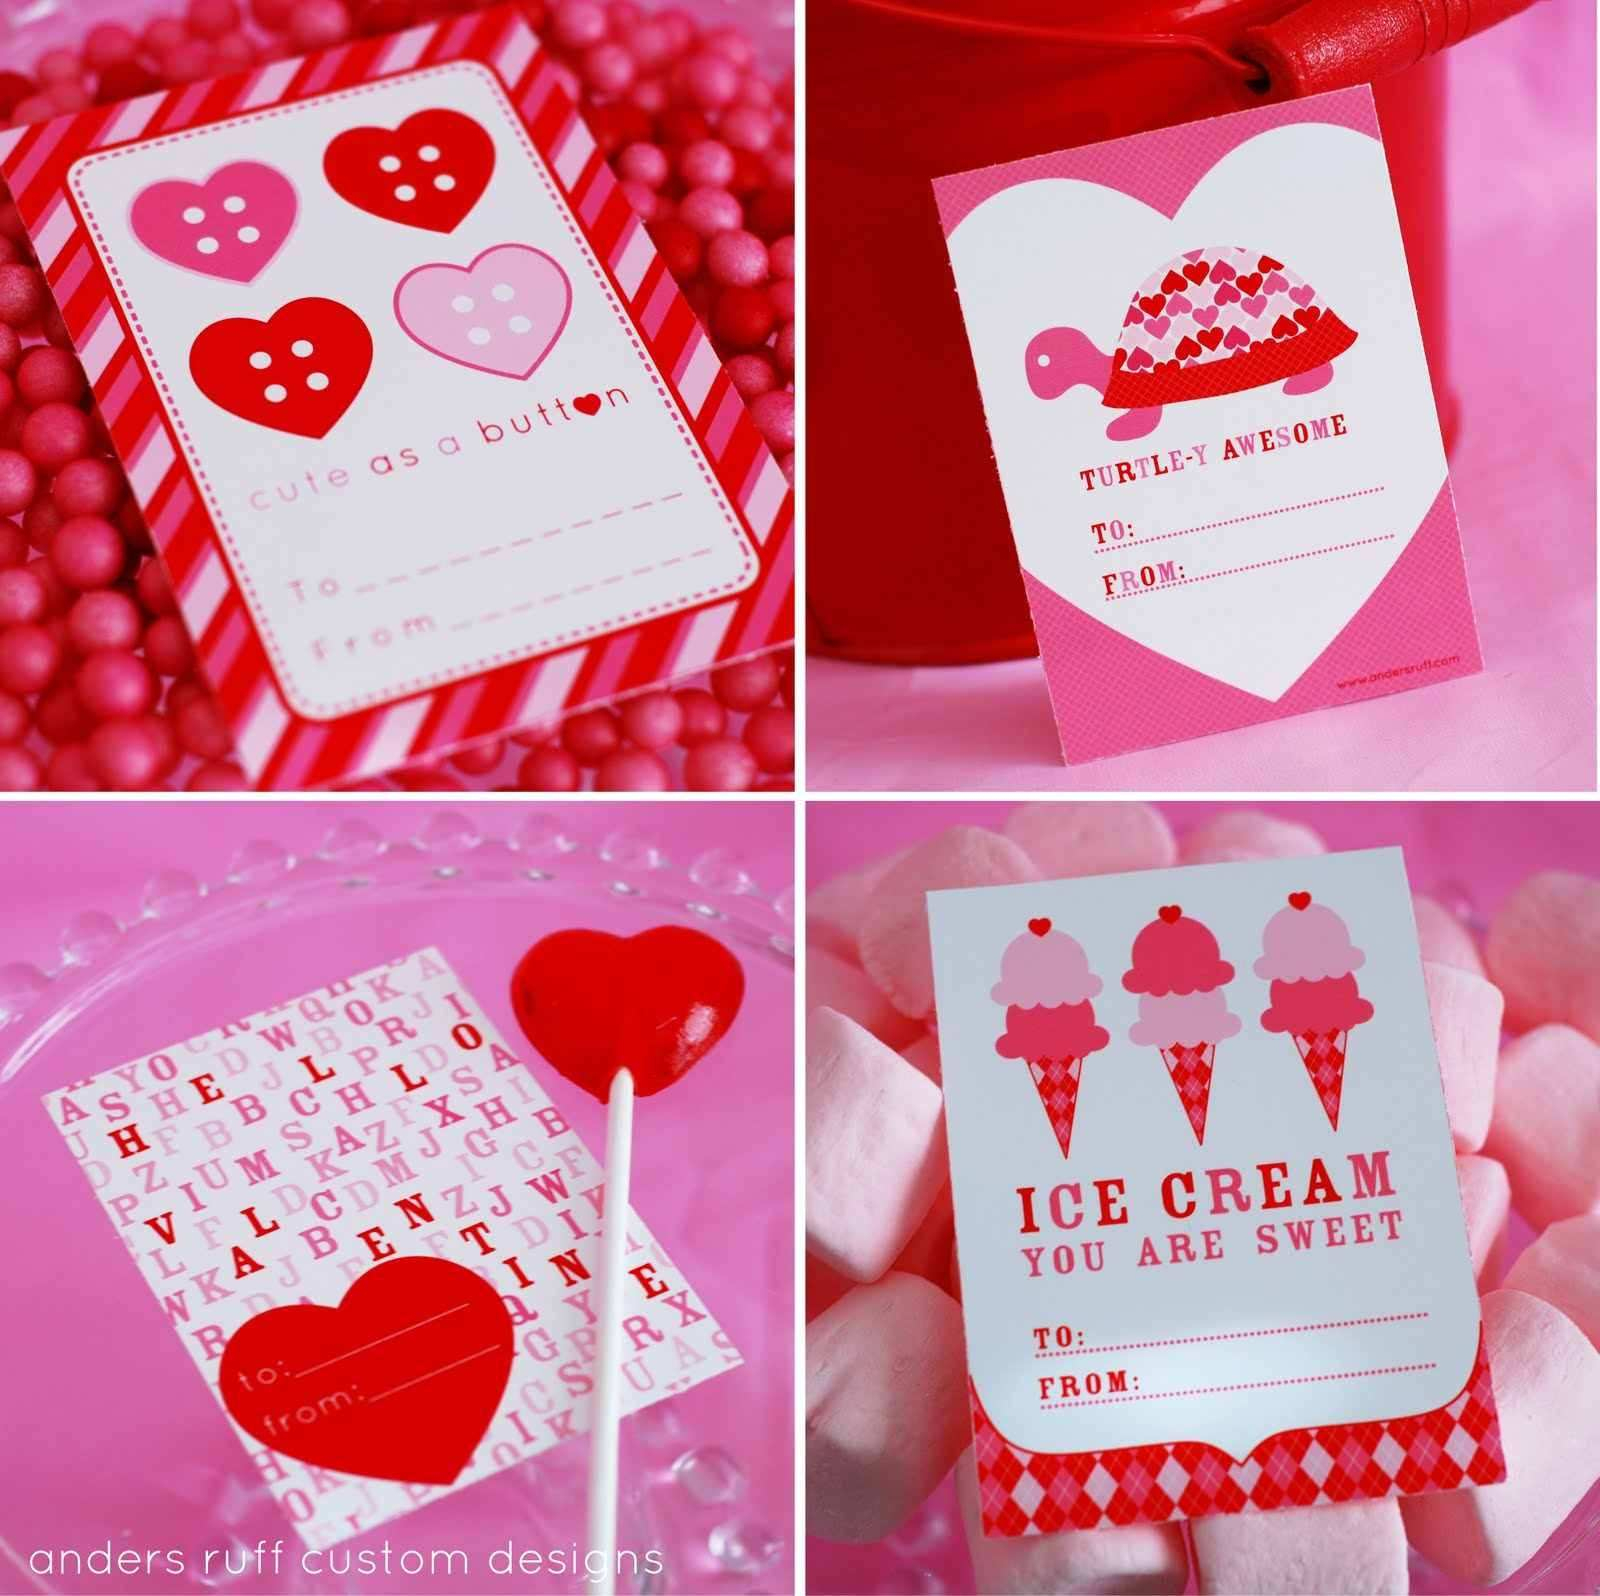 Unique Gift Ideas For Husband Valentines Day Free Printable - Free Printable Valentine Cards For Husband